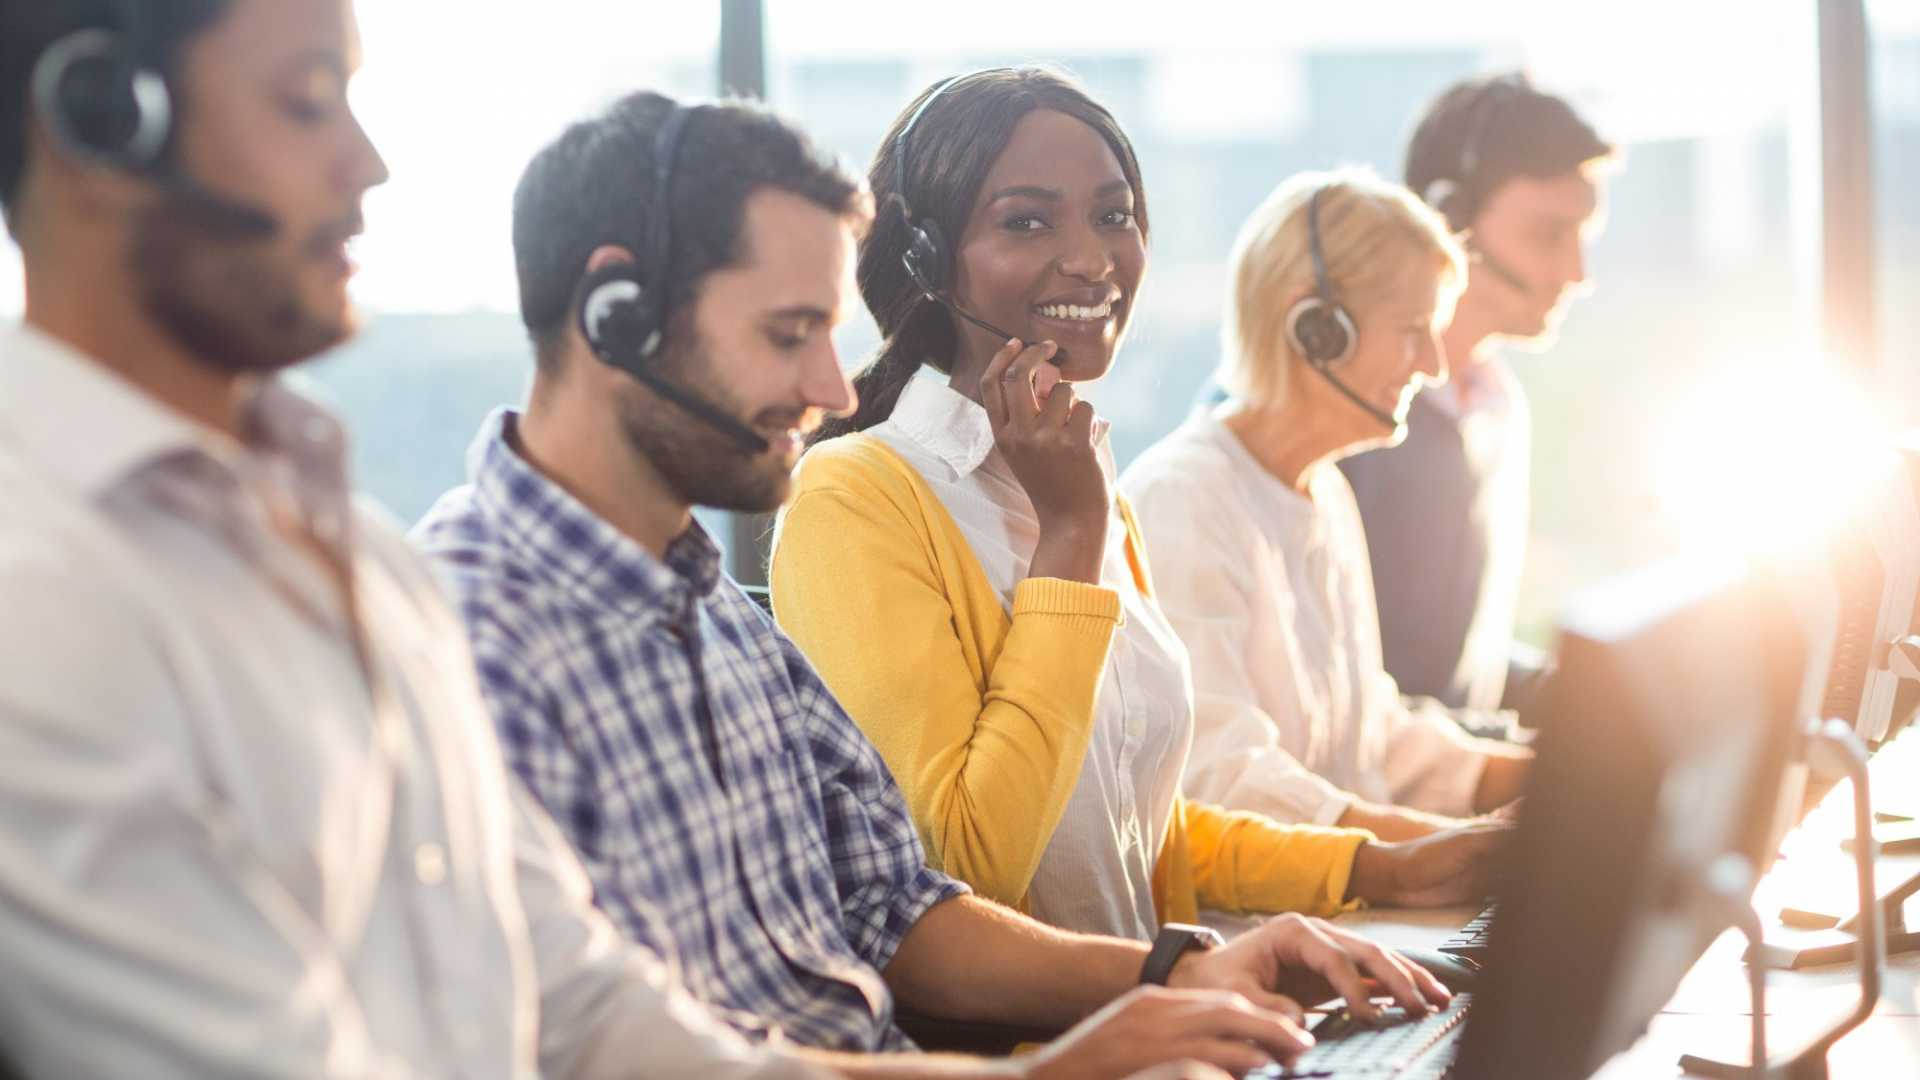 Your Customers Want Service. Are You Listening?